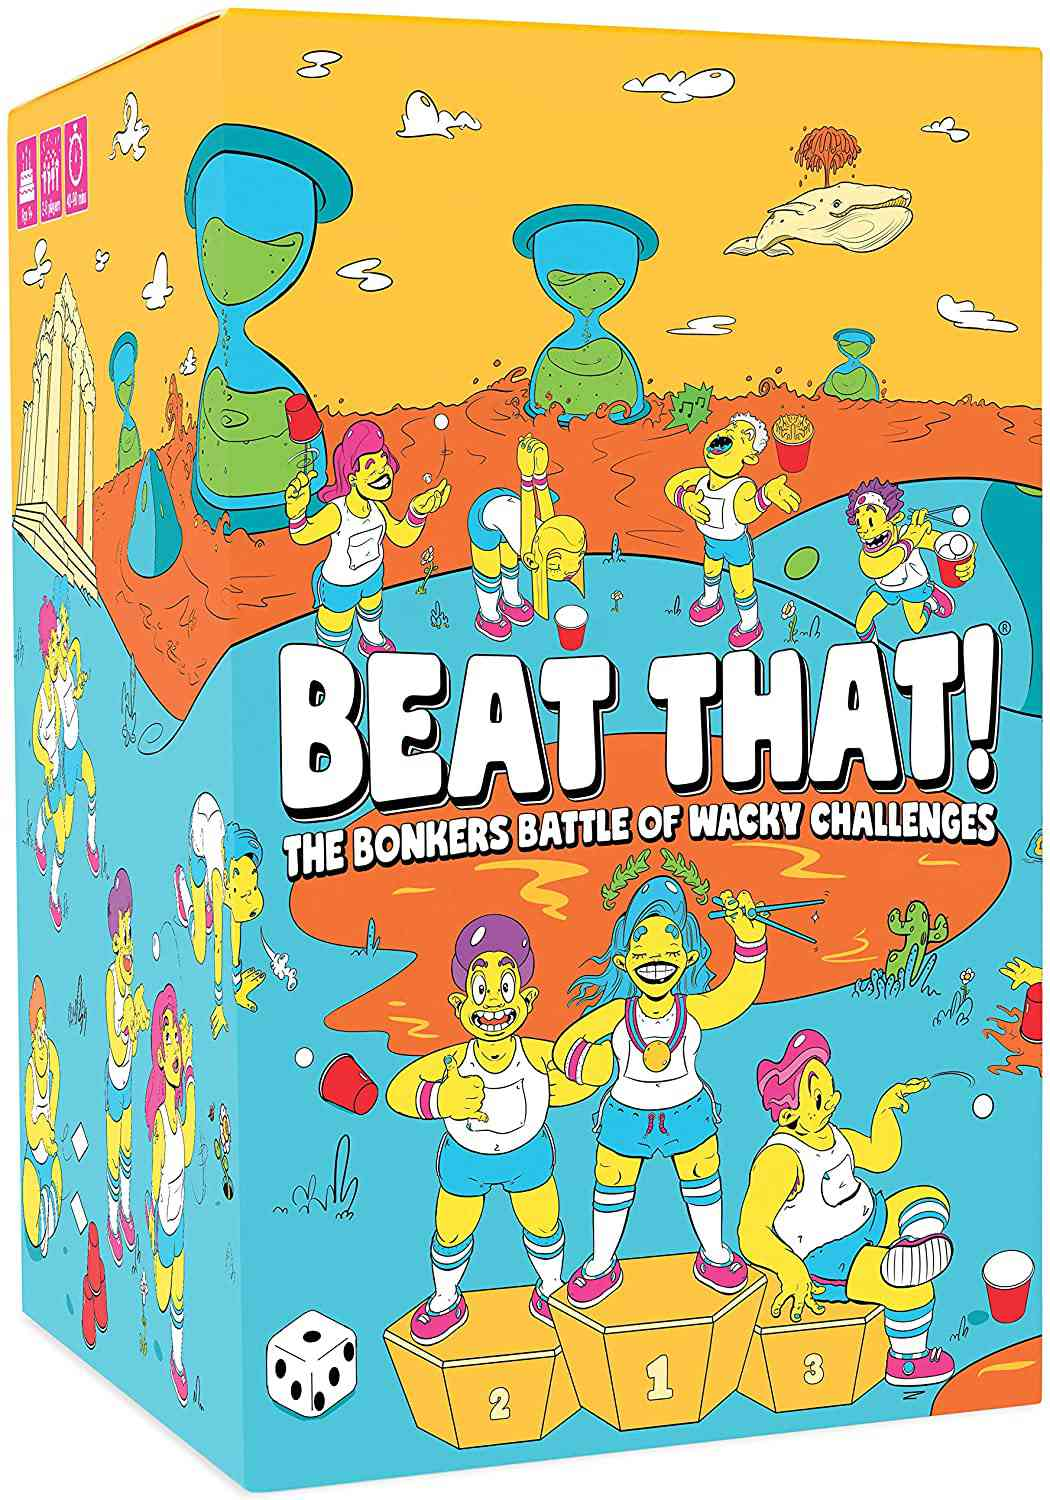 Gutter Games Beat That! The Bonkers Battle of Wacky Challenges